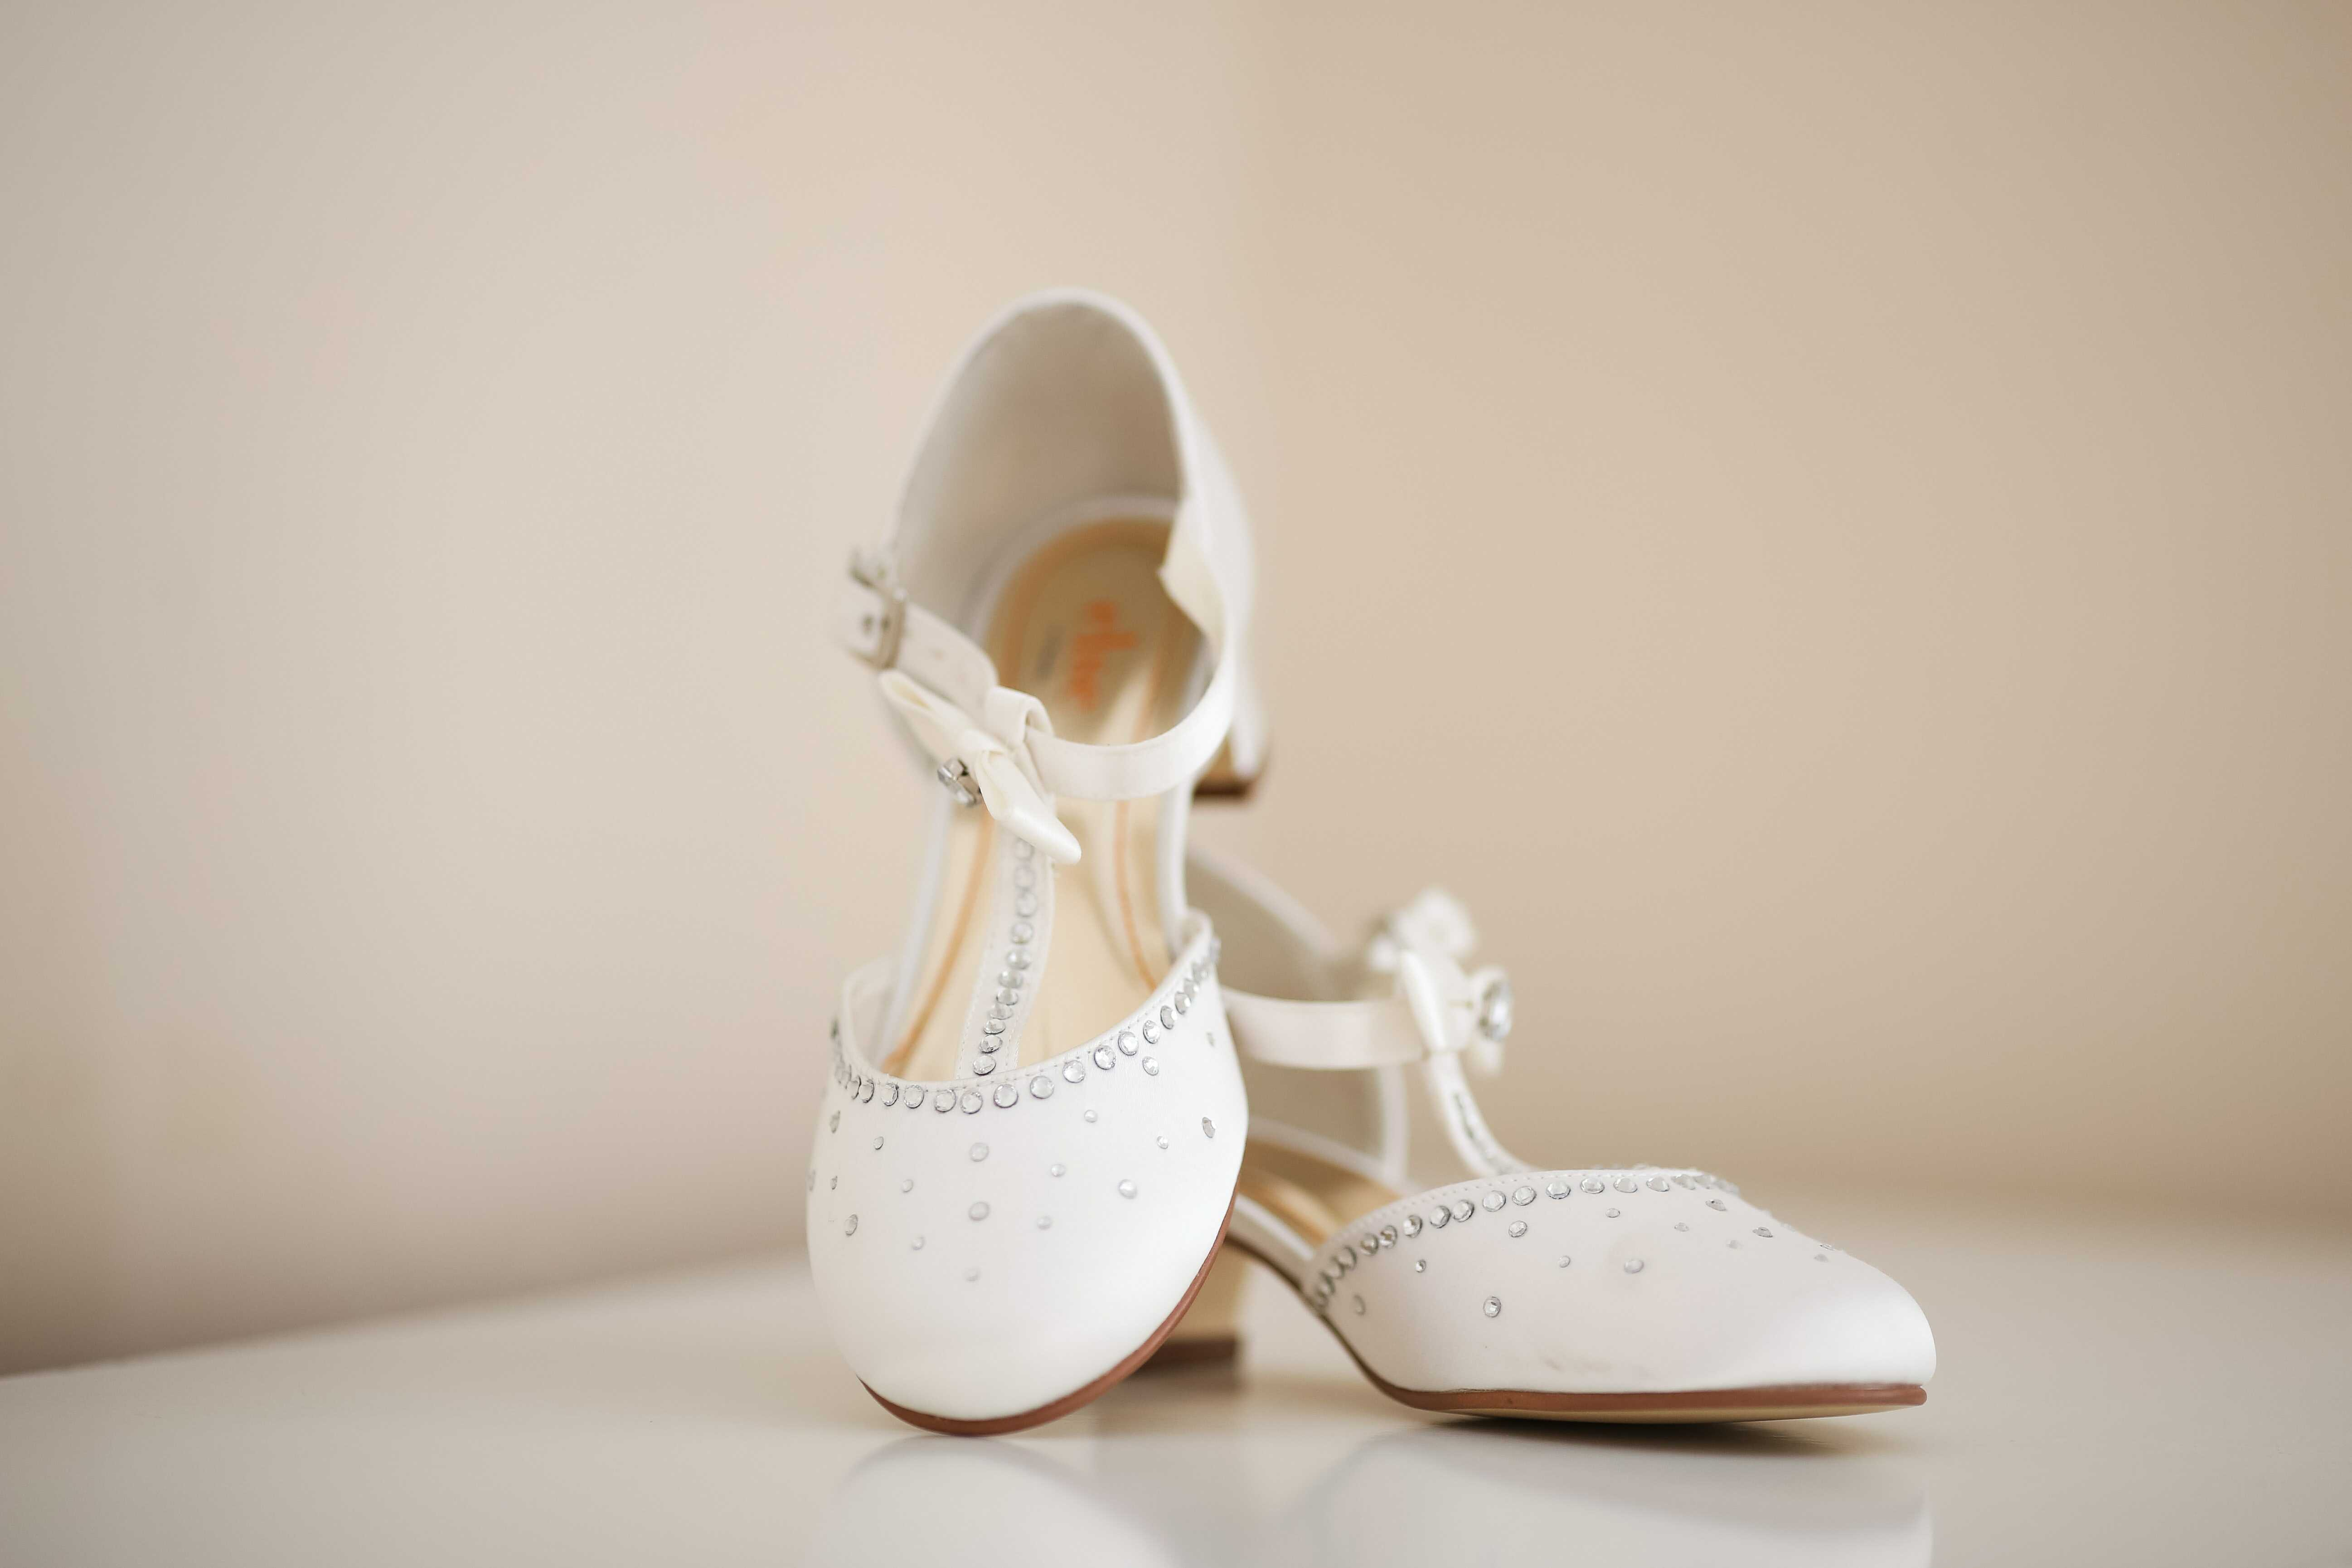 a white t-shaped strap heels